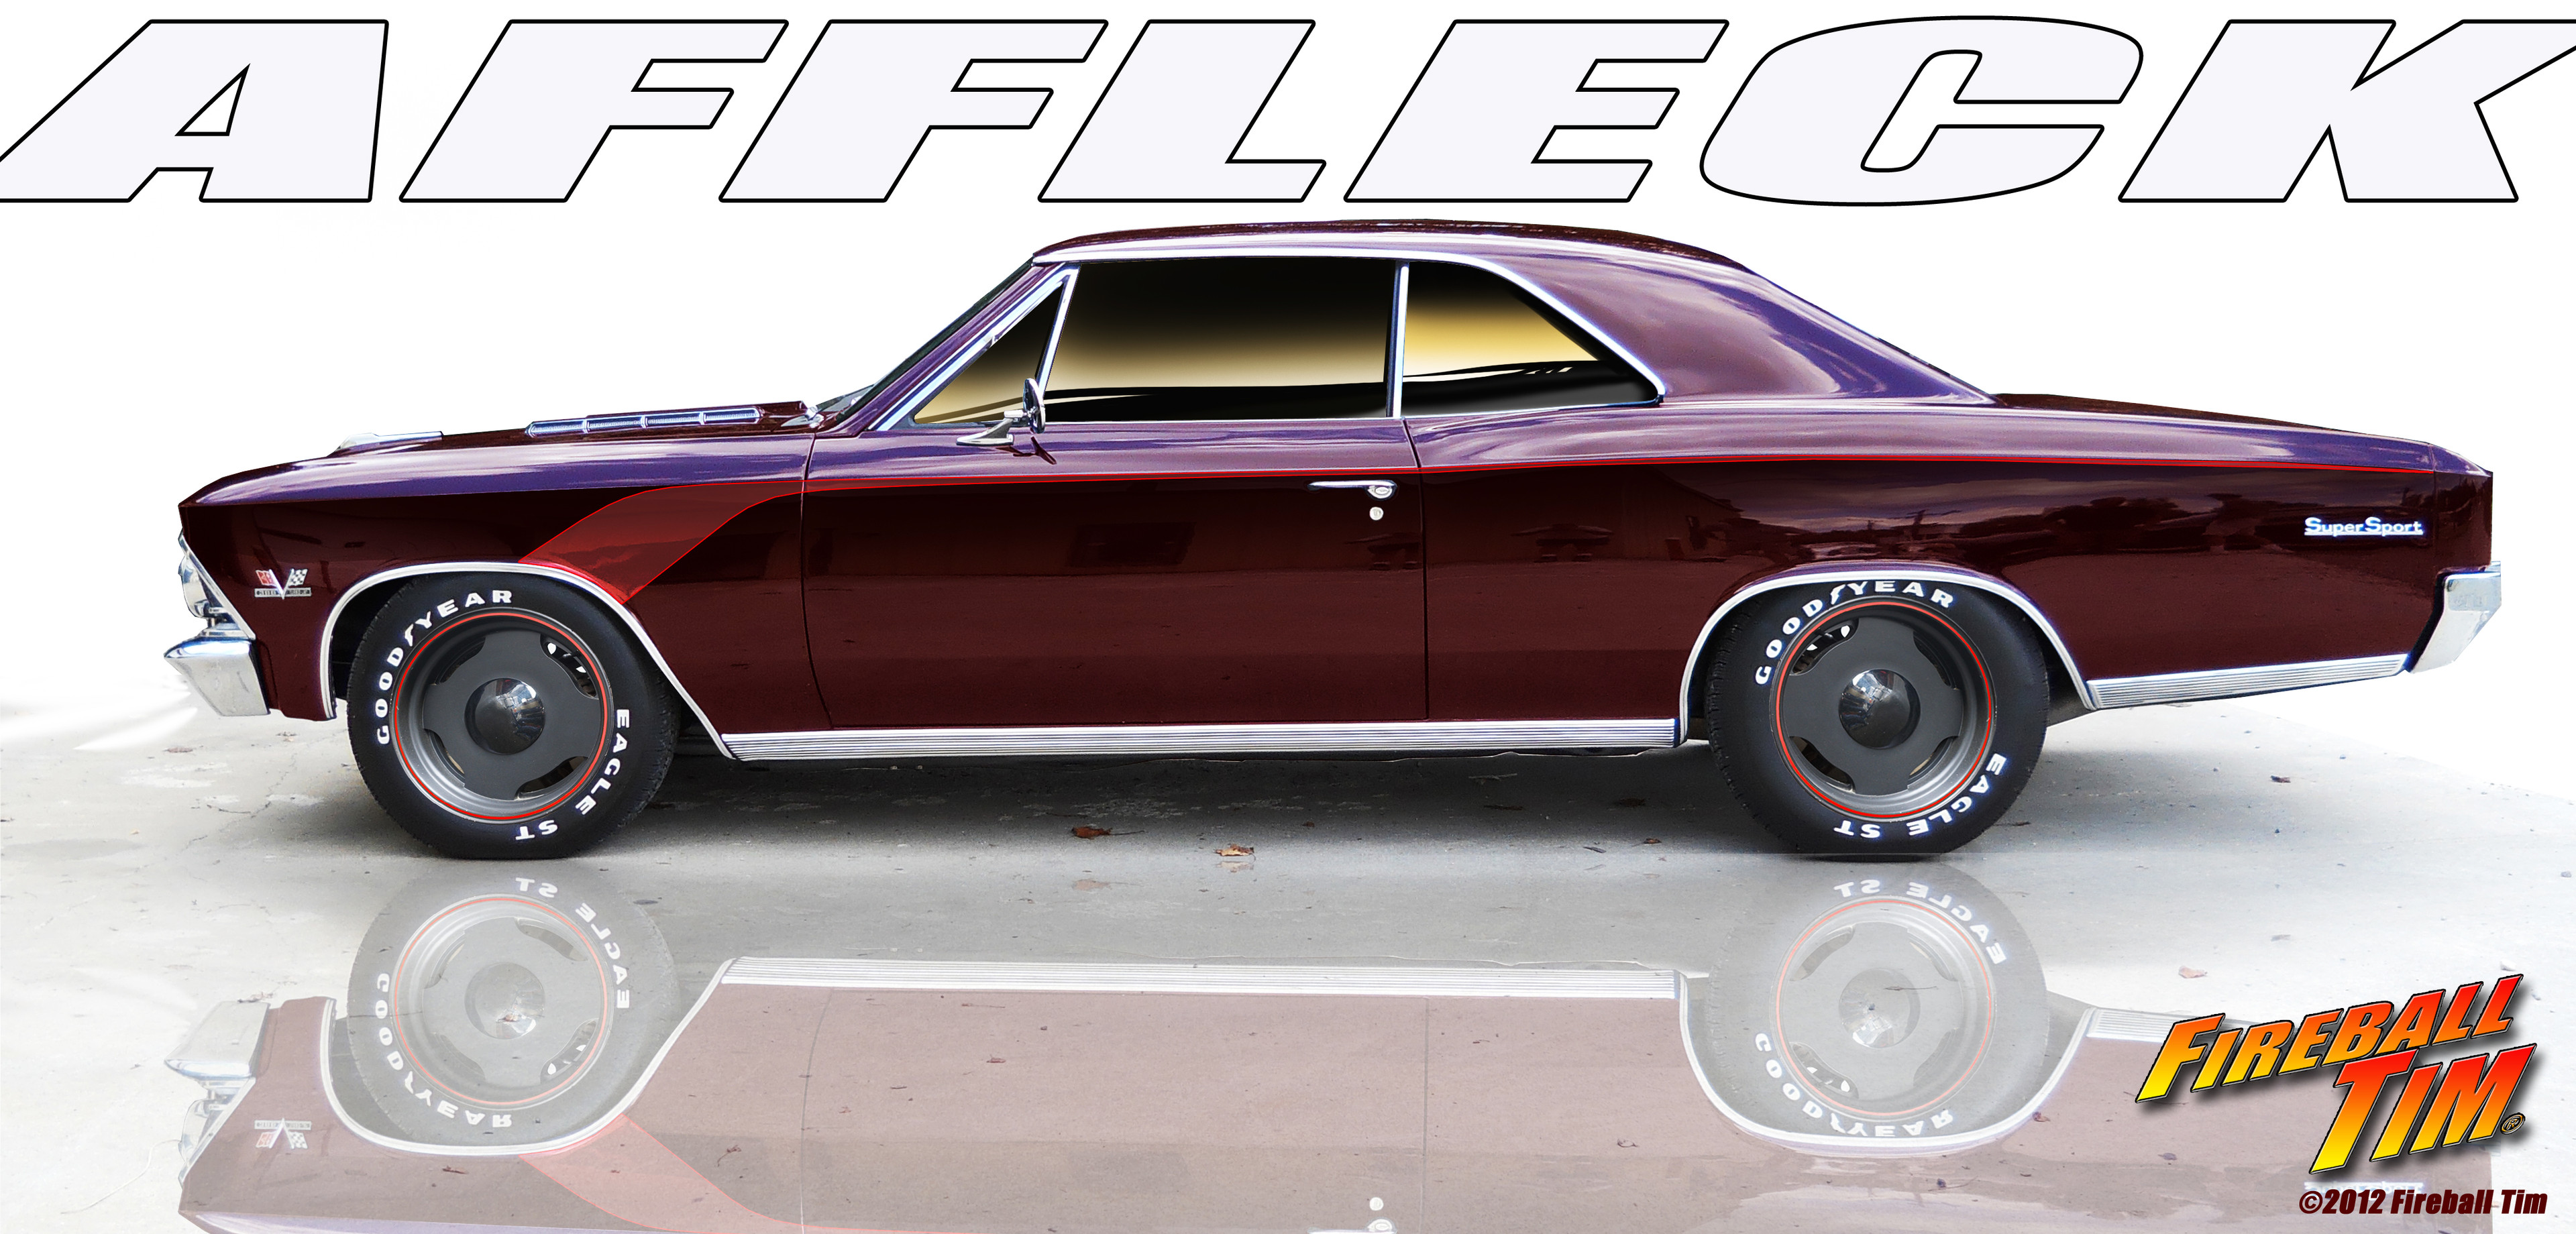 Chevelle Designed and built for Actor BEN AFFLECK